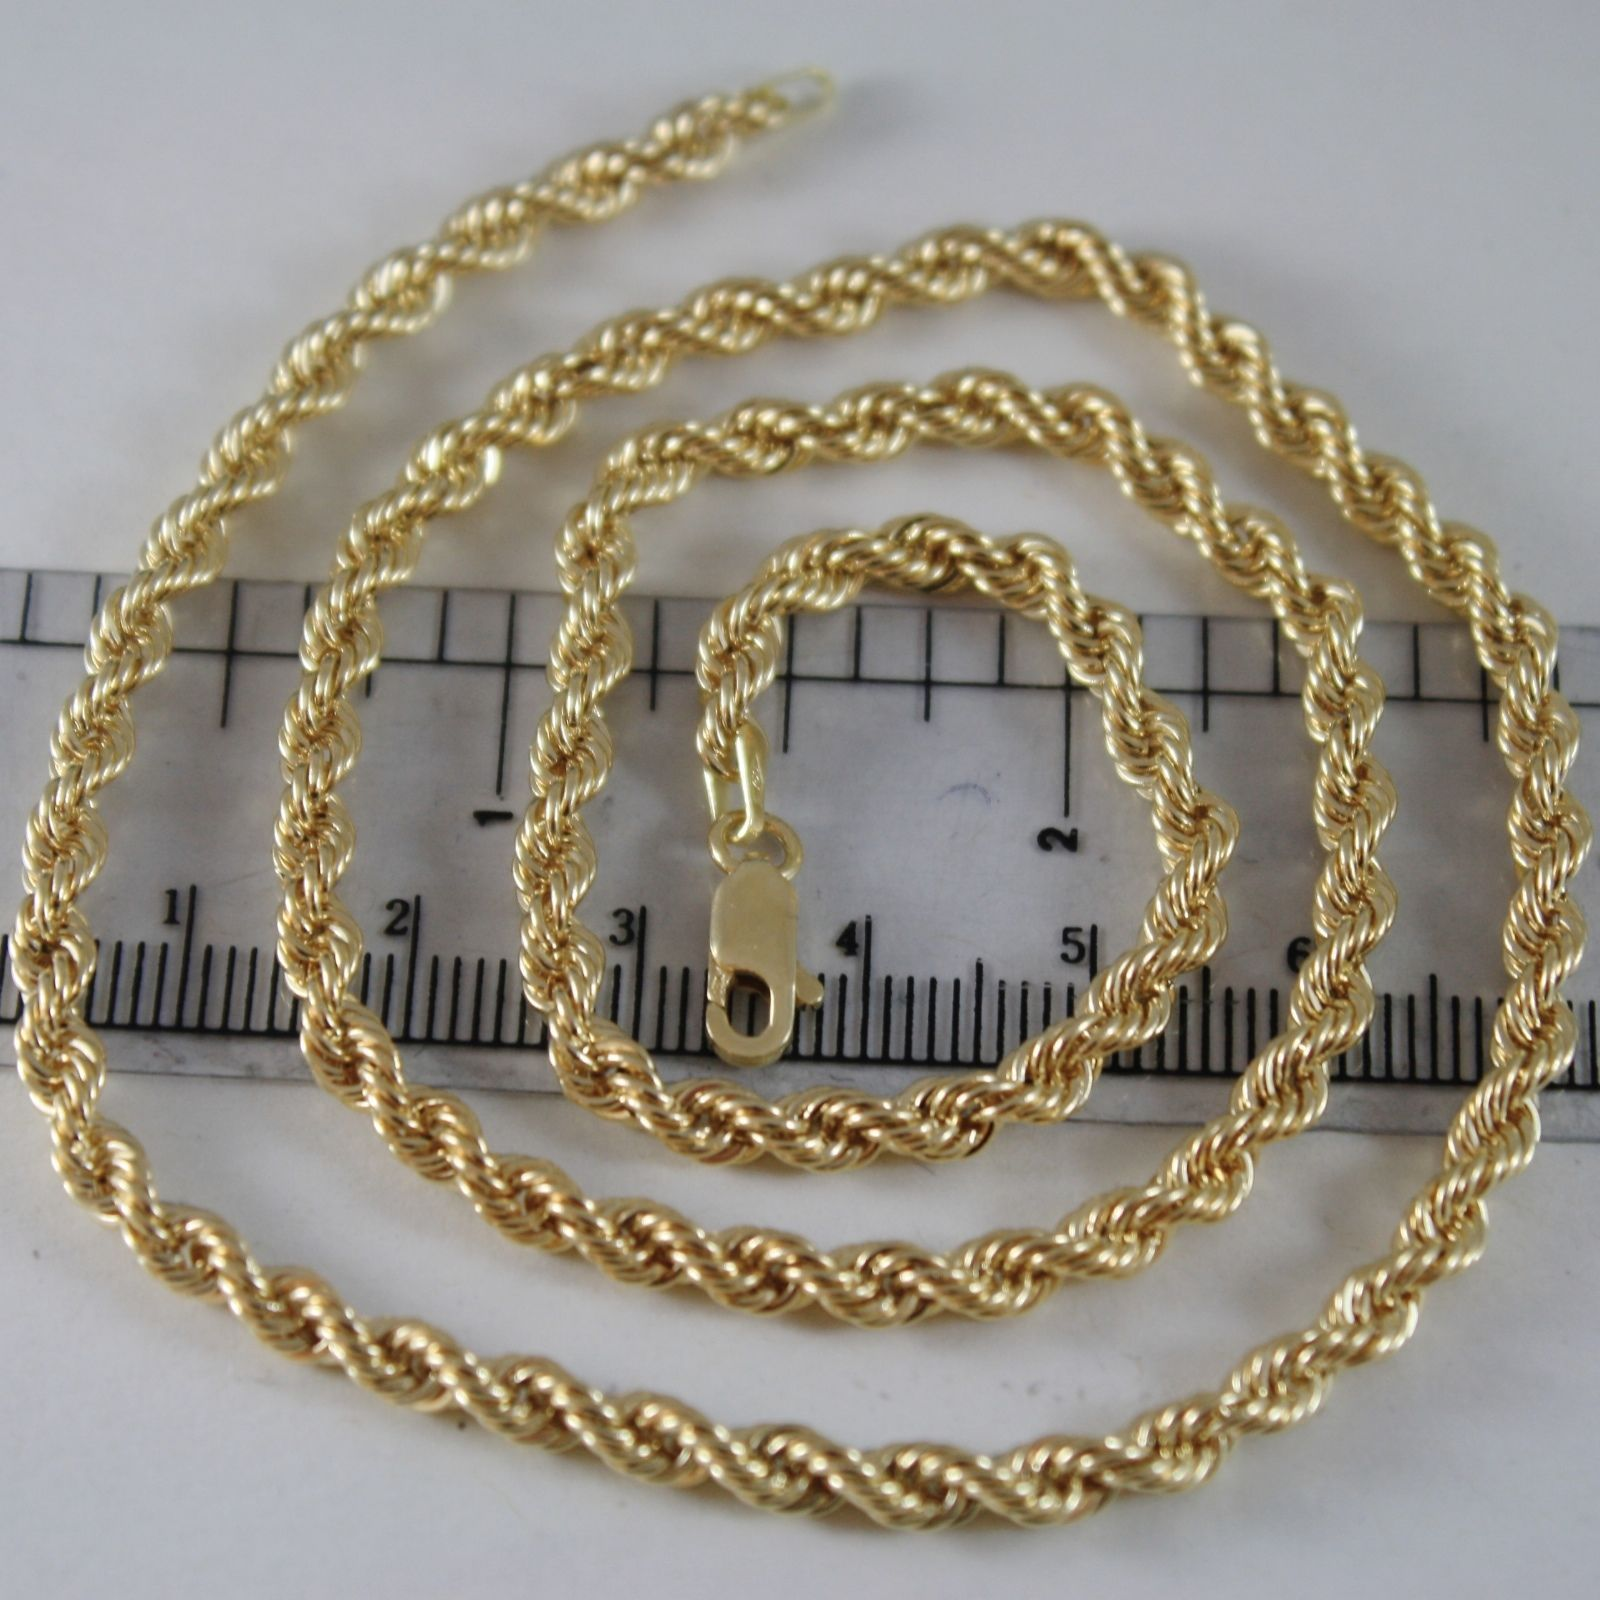 18K YELLOW GOLD CHAIN NECKLACE 4 MM BIG BRAID ROPE LINK 19.70 IN. MADE IN ITALY